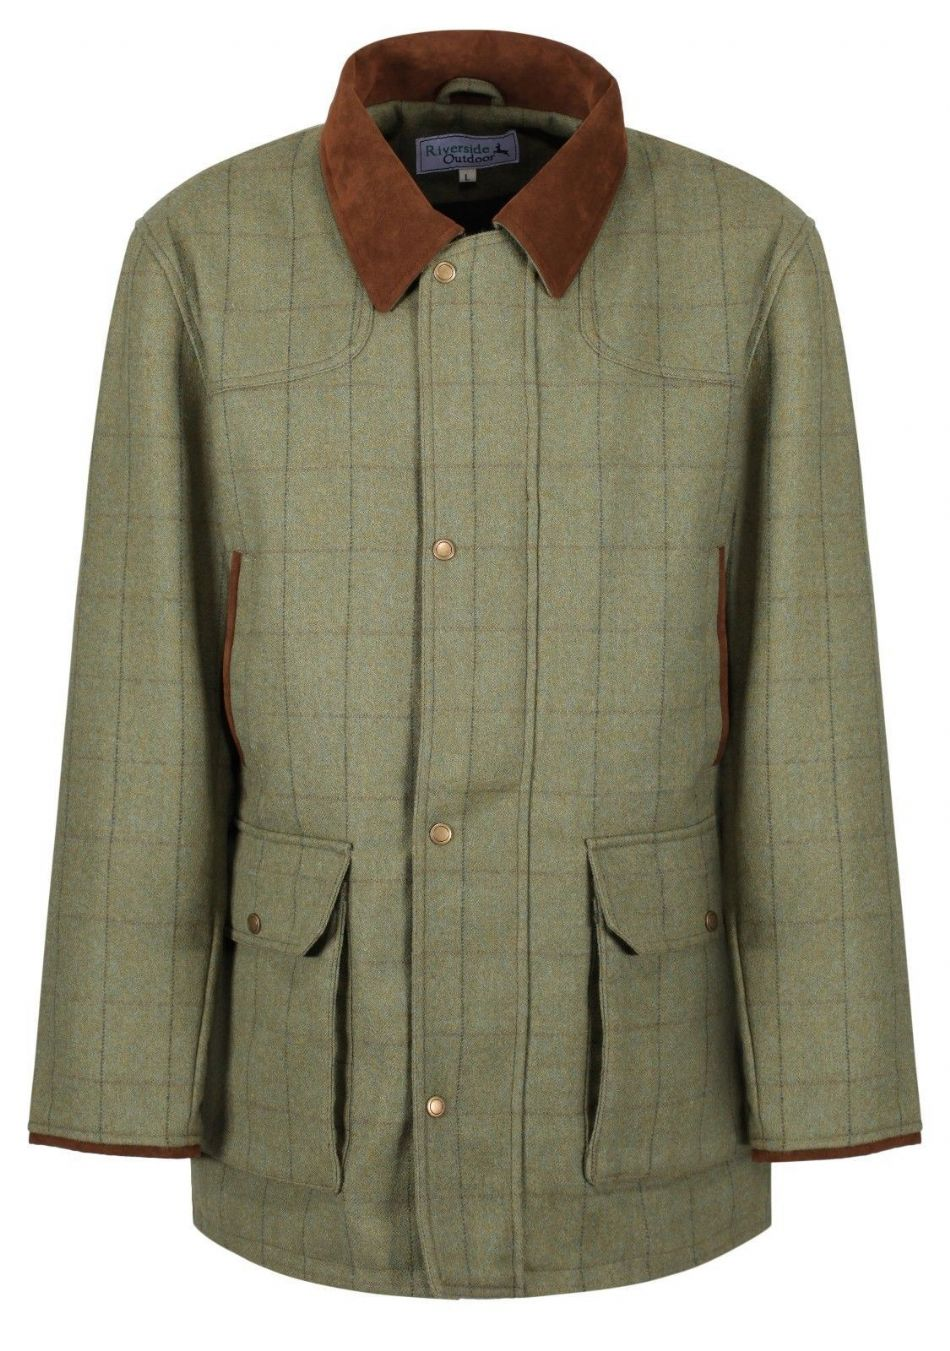 Kensington 100% Wool Tweed Shooting Jacket Coat Traditional Tailored Quality New